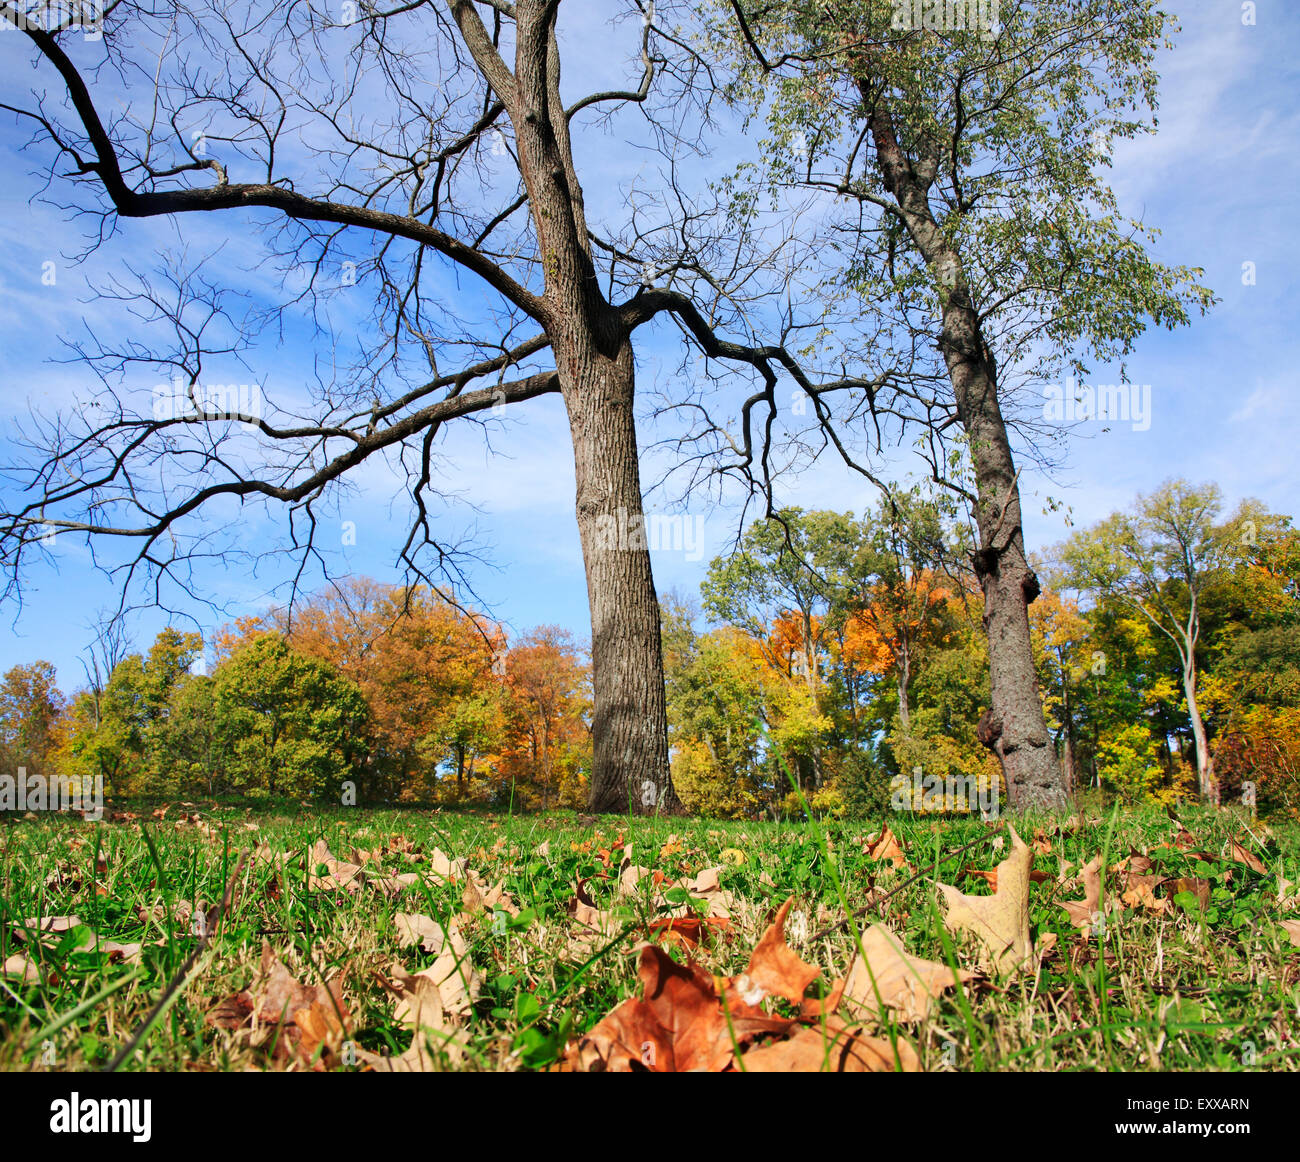 Trees And Fallen Leaves In Autumn, Sharon Woods, Southwestern Ohio, USA - Stock Image